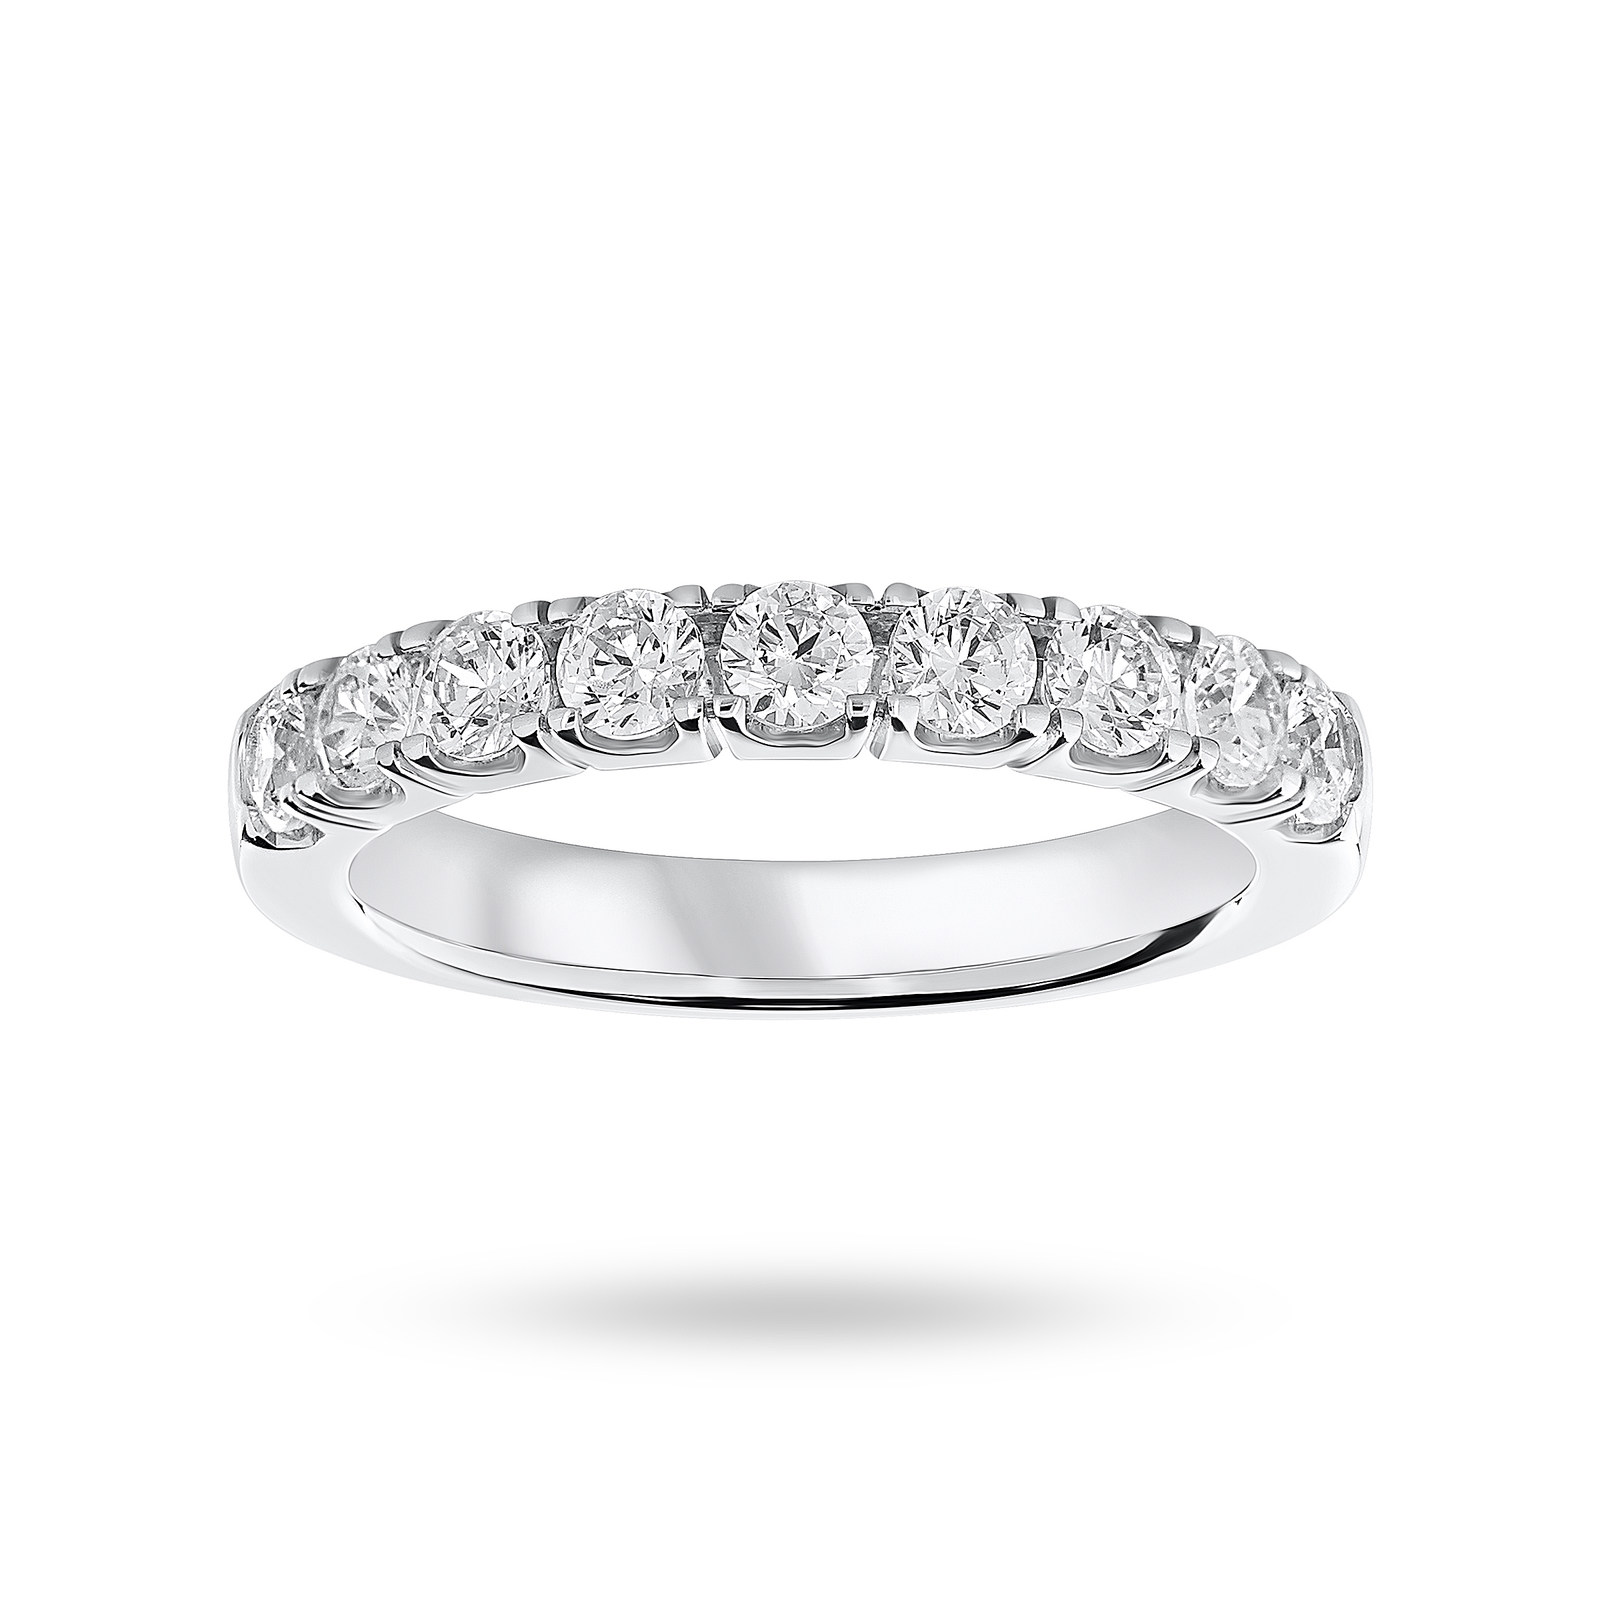 18 Carat White Gold 0.75 Carat Brilliant Cut Half Eternity